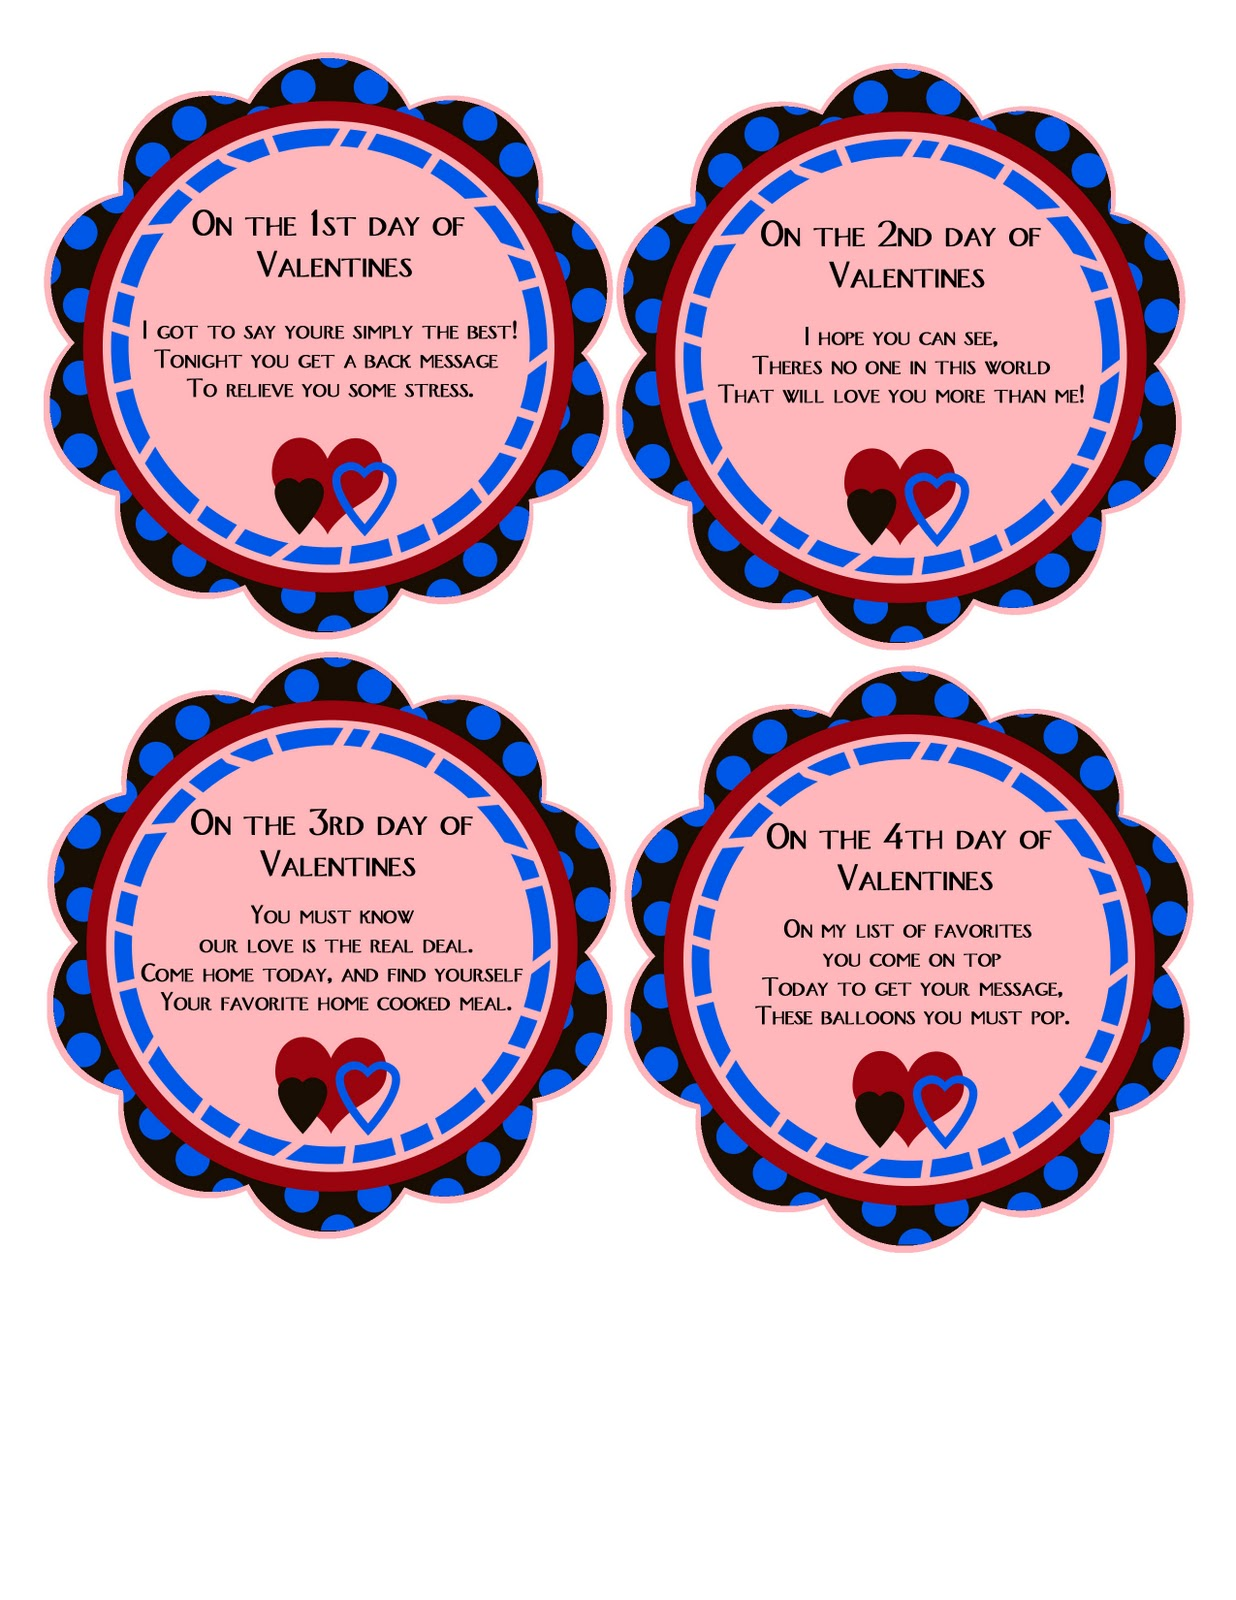 14 days of valentinesfree printable cards and gift ideas - 14 Days Of Valentines For Him